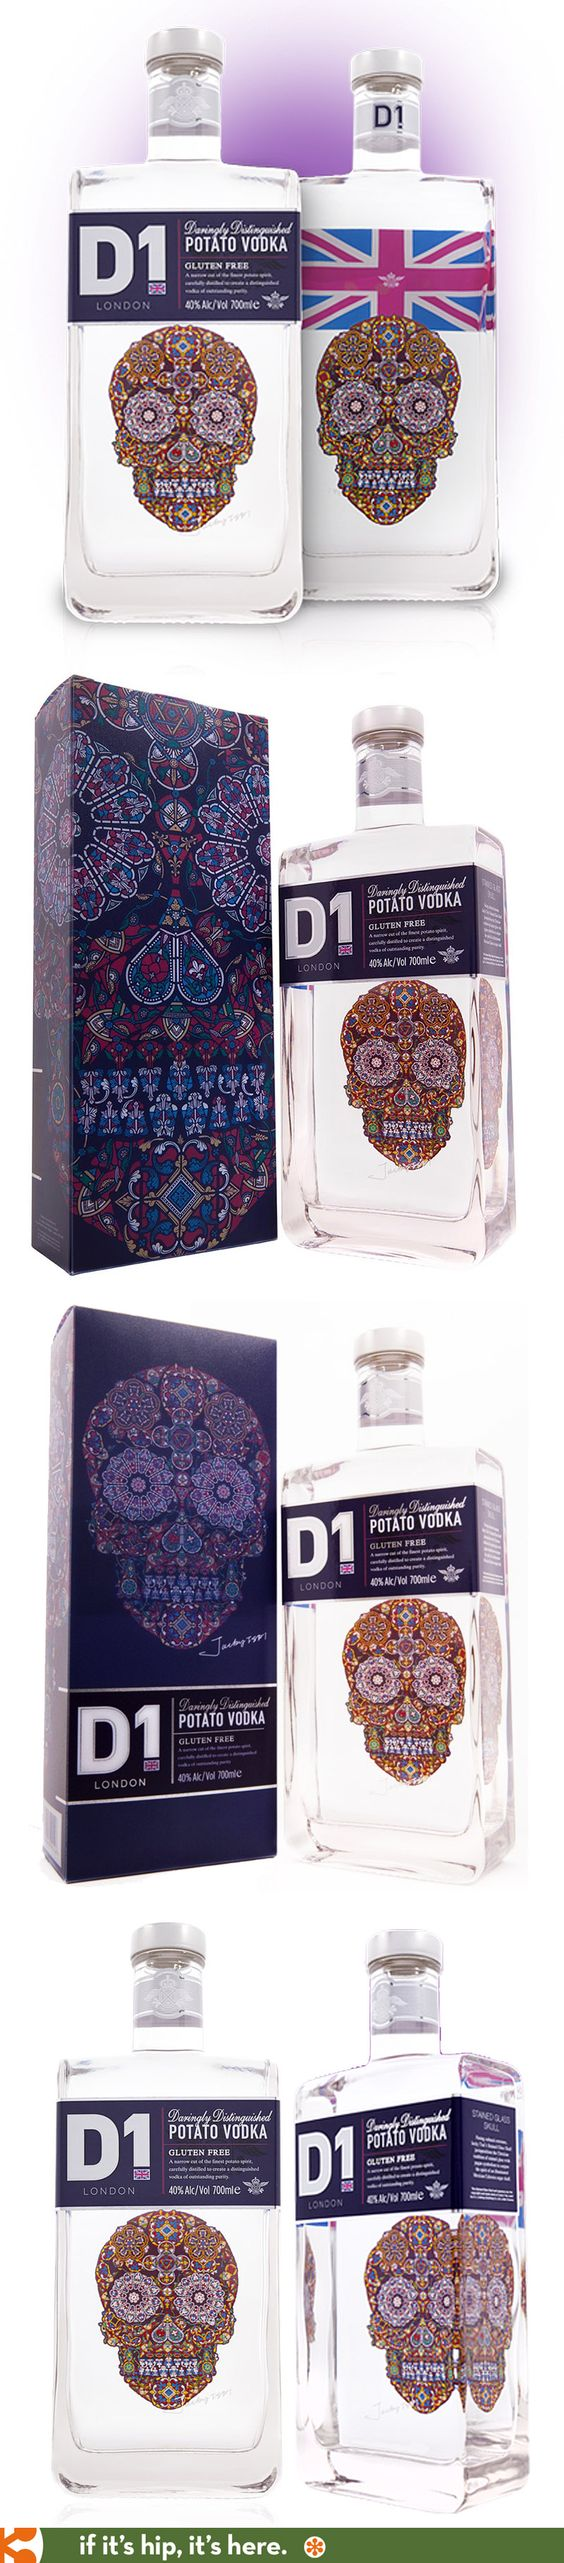 D1's Super Premium Potato Vodka with Jacky Tsai's Stained Glass Skull design.